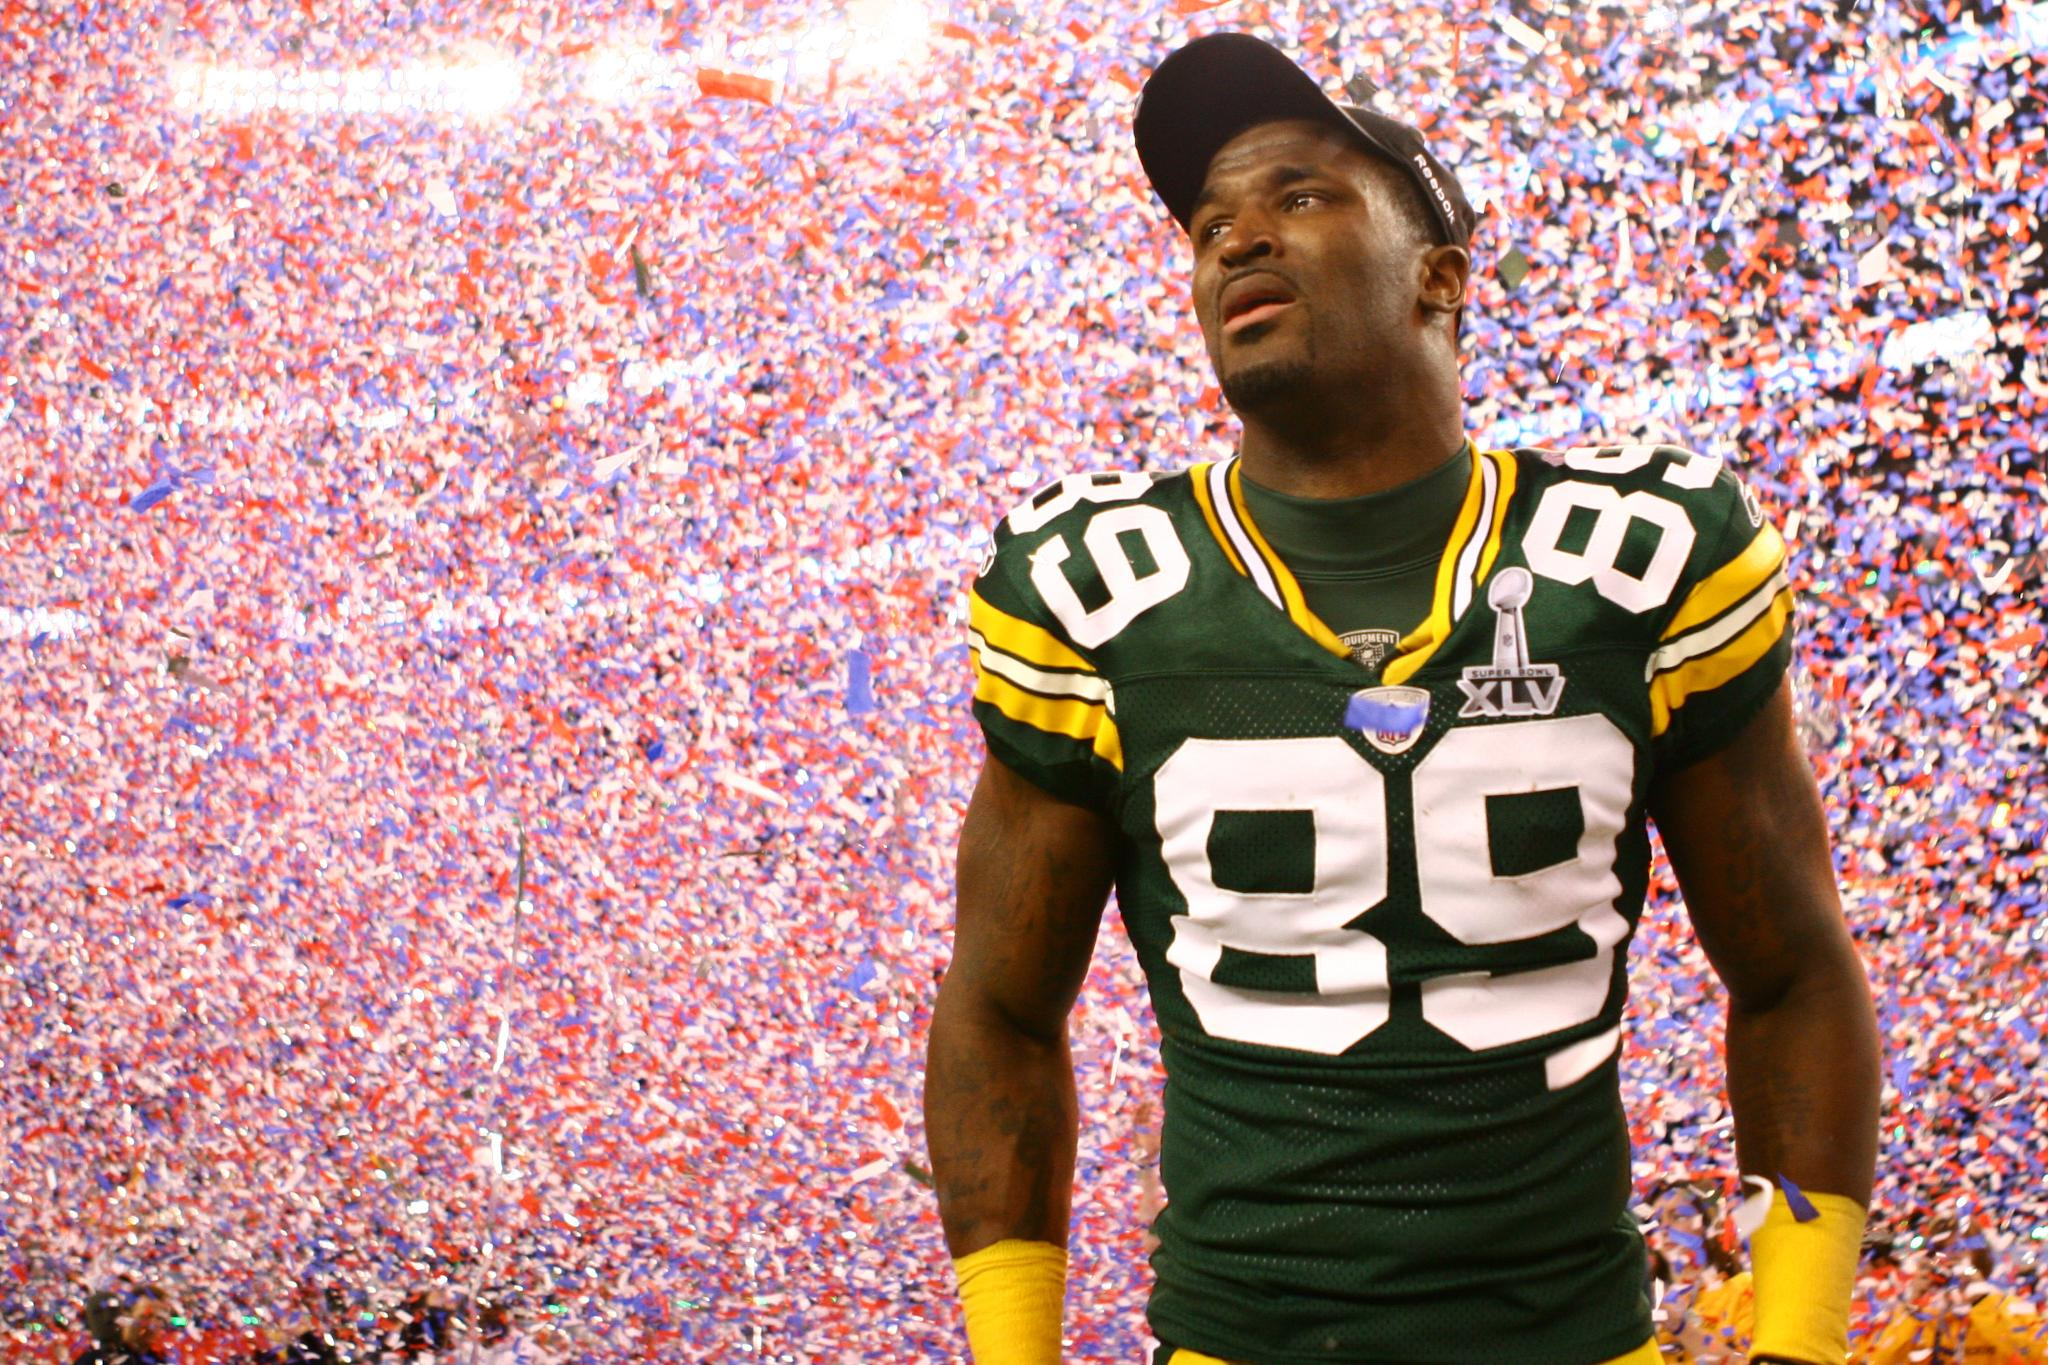 Remembering Super Bowl XLV with former #Packers WR @89JonesNTAF   ��: https://t.co/NO5fDMZlN8 https://t.co/or3NCIjuA0